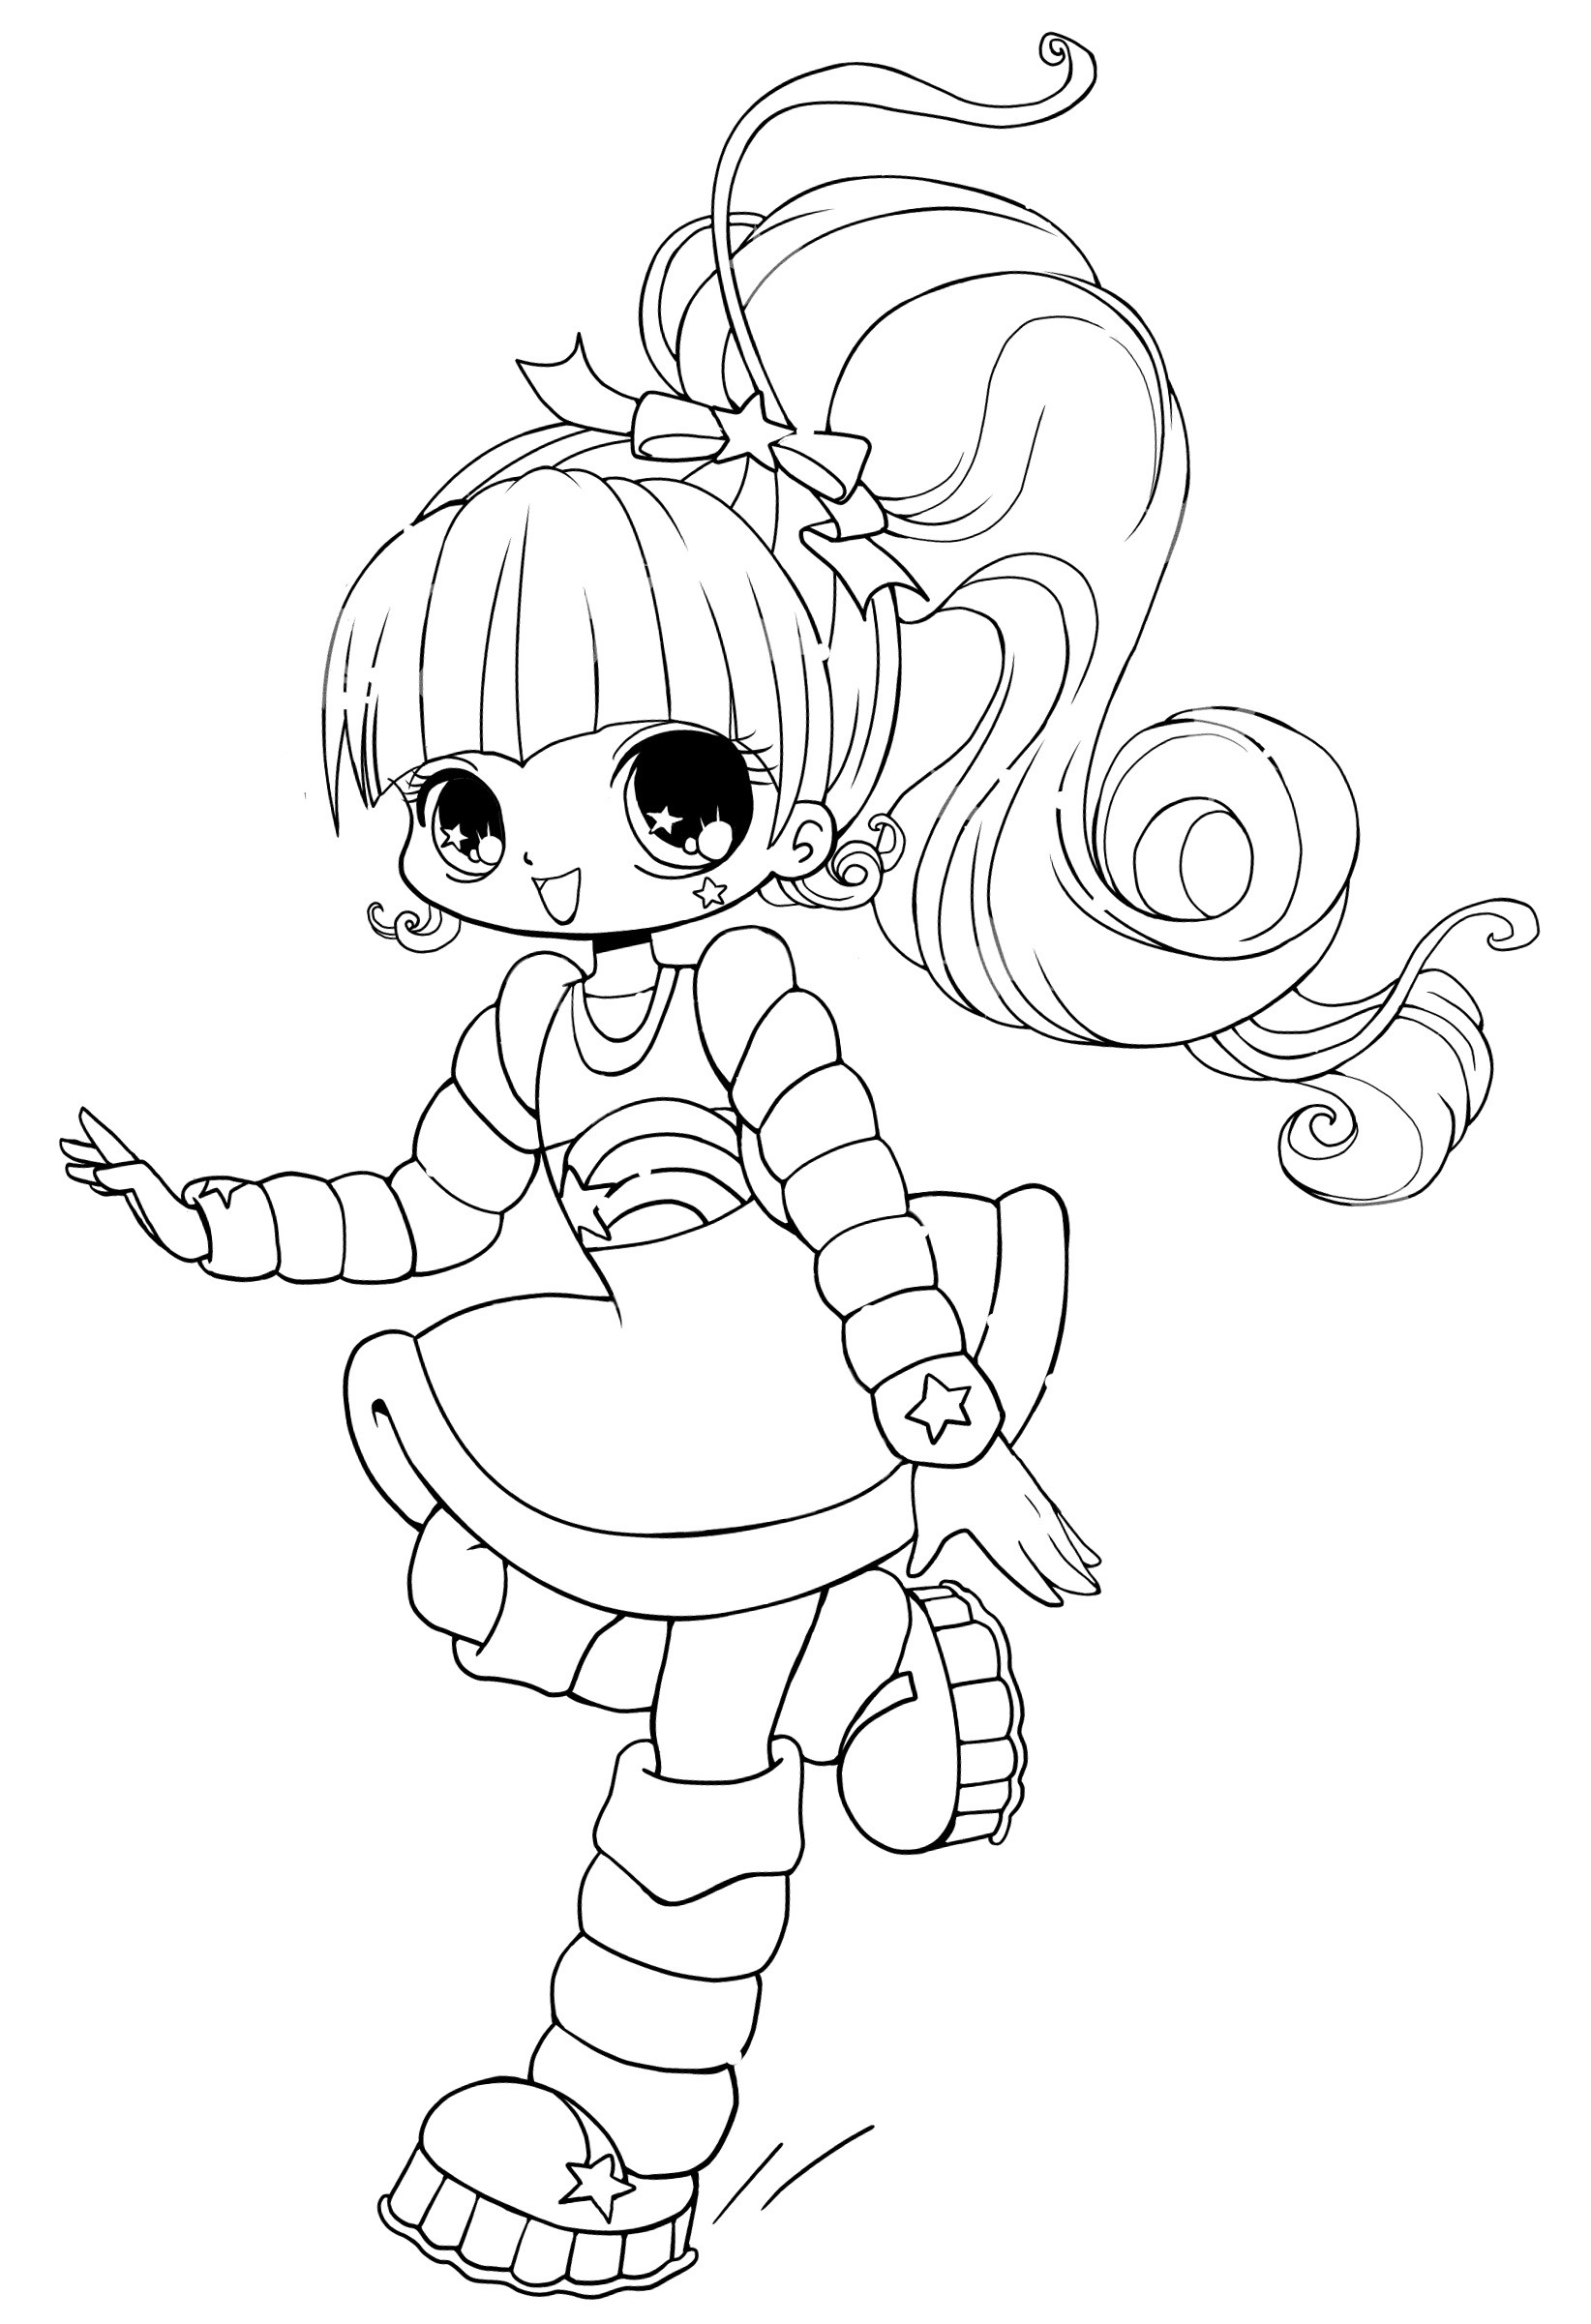 Cute Coloring Pages  Free Printable Chibi Coloring Pages For Kids